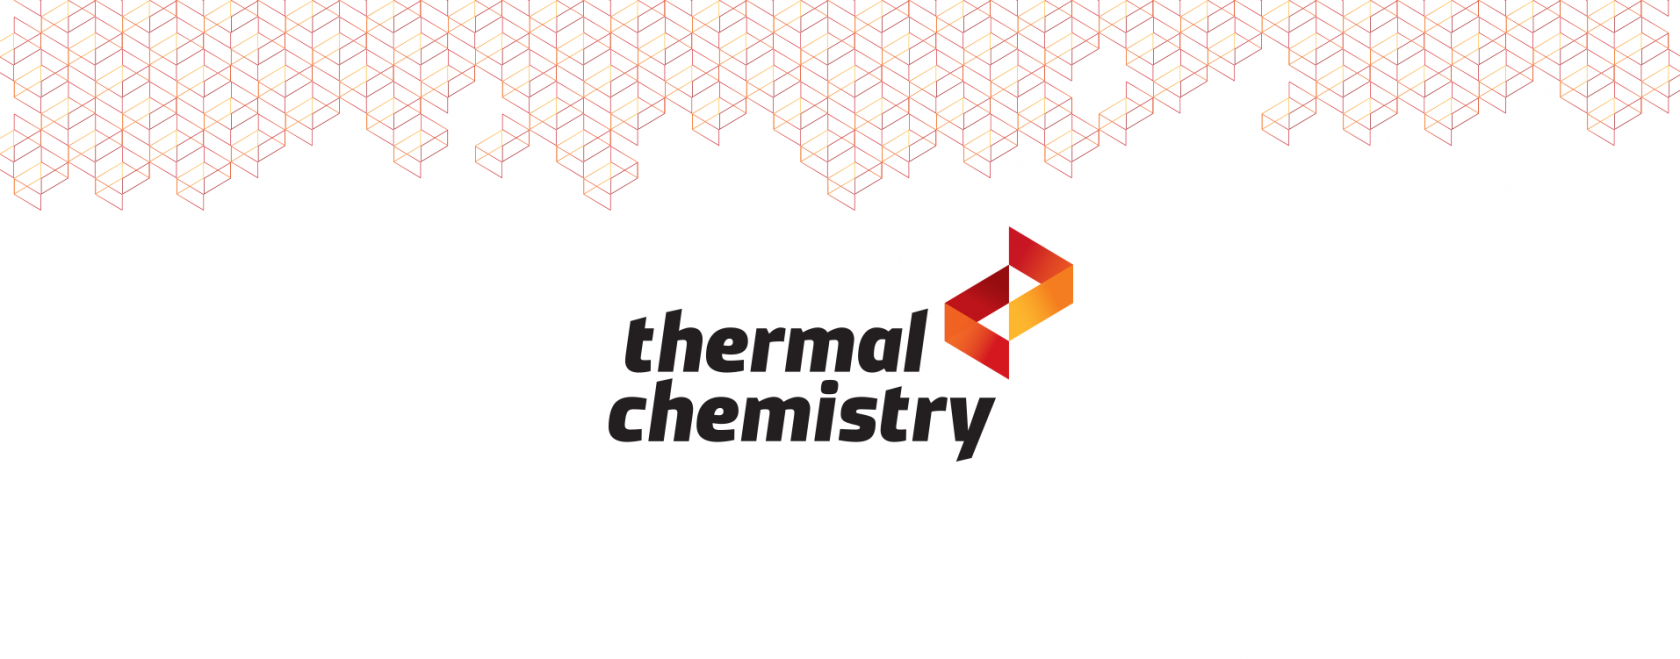 project-Thermalchemistry-logo